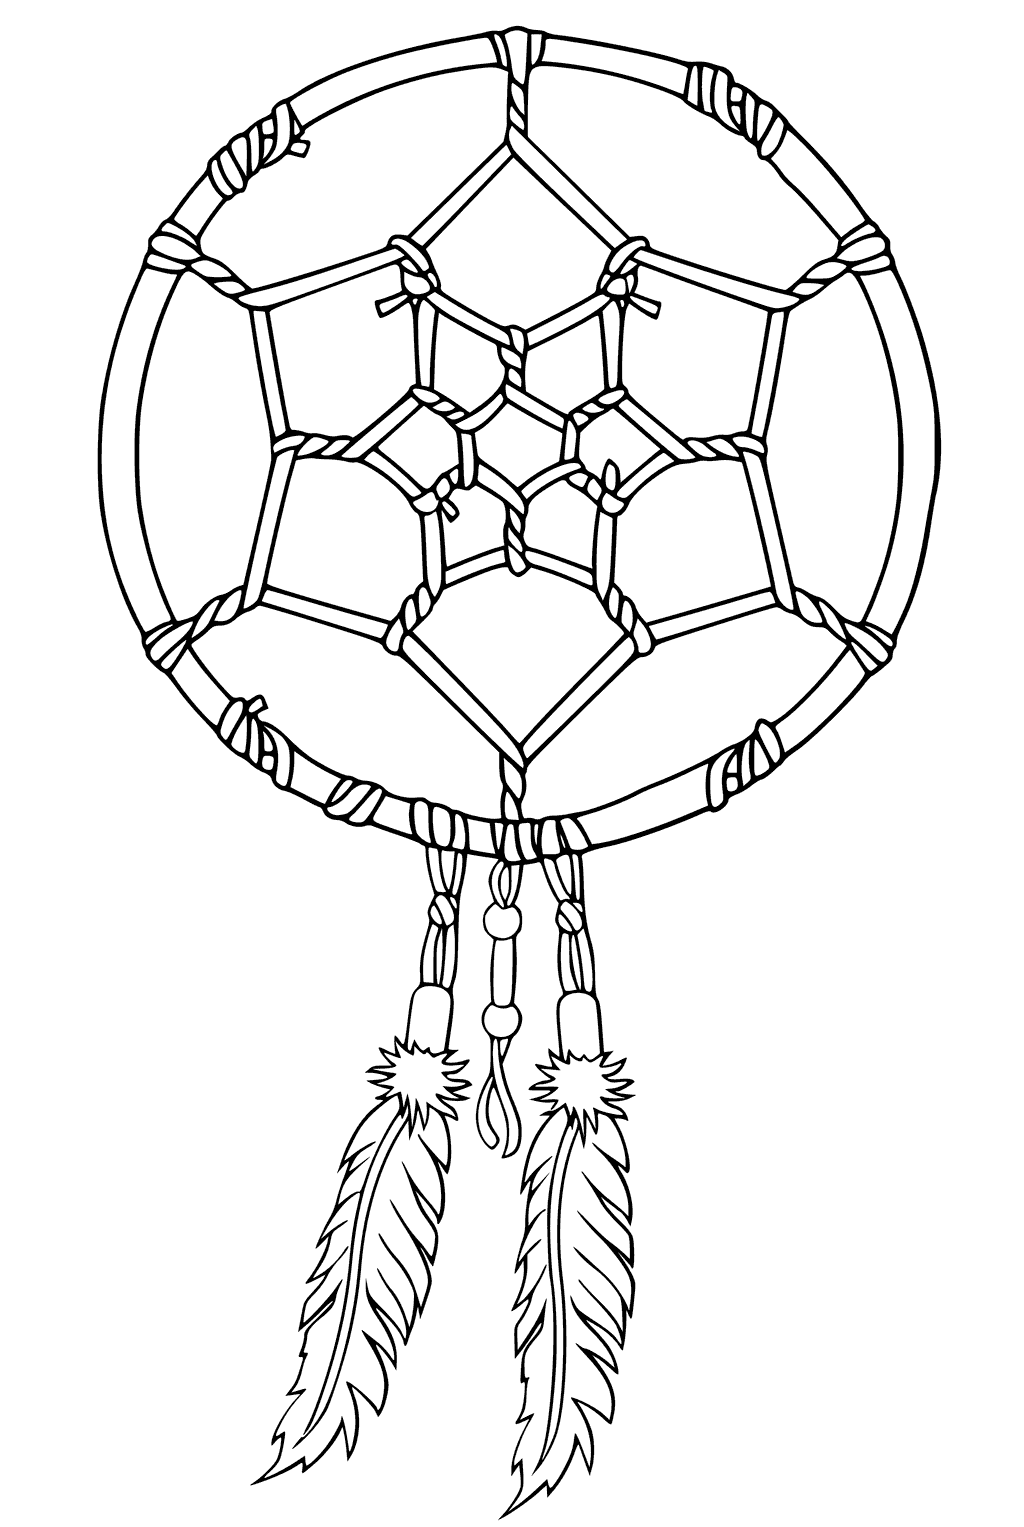 Dreamcatcher Printable Coloring Pages At Getcolorings